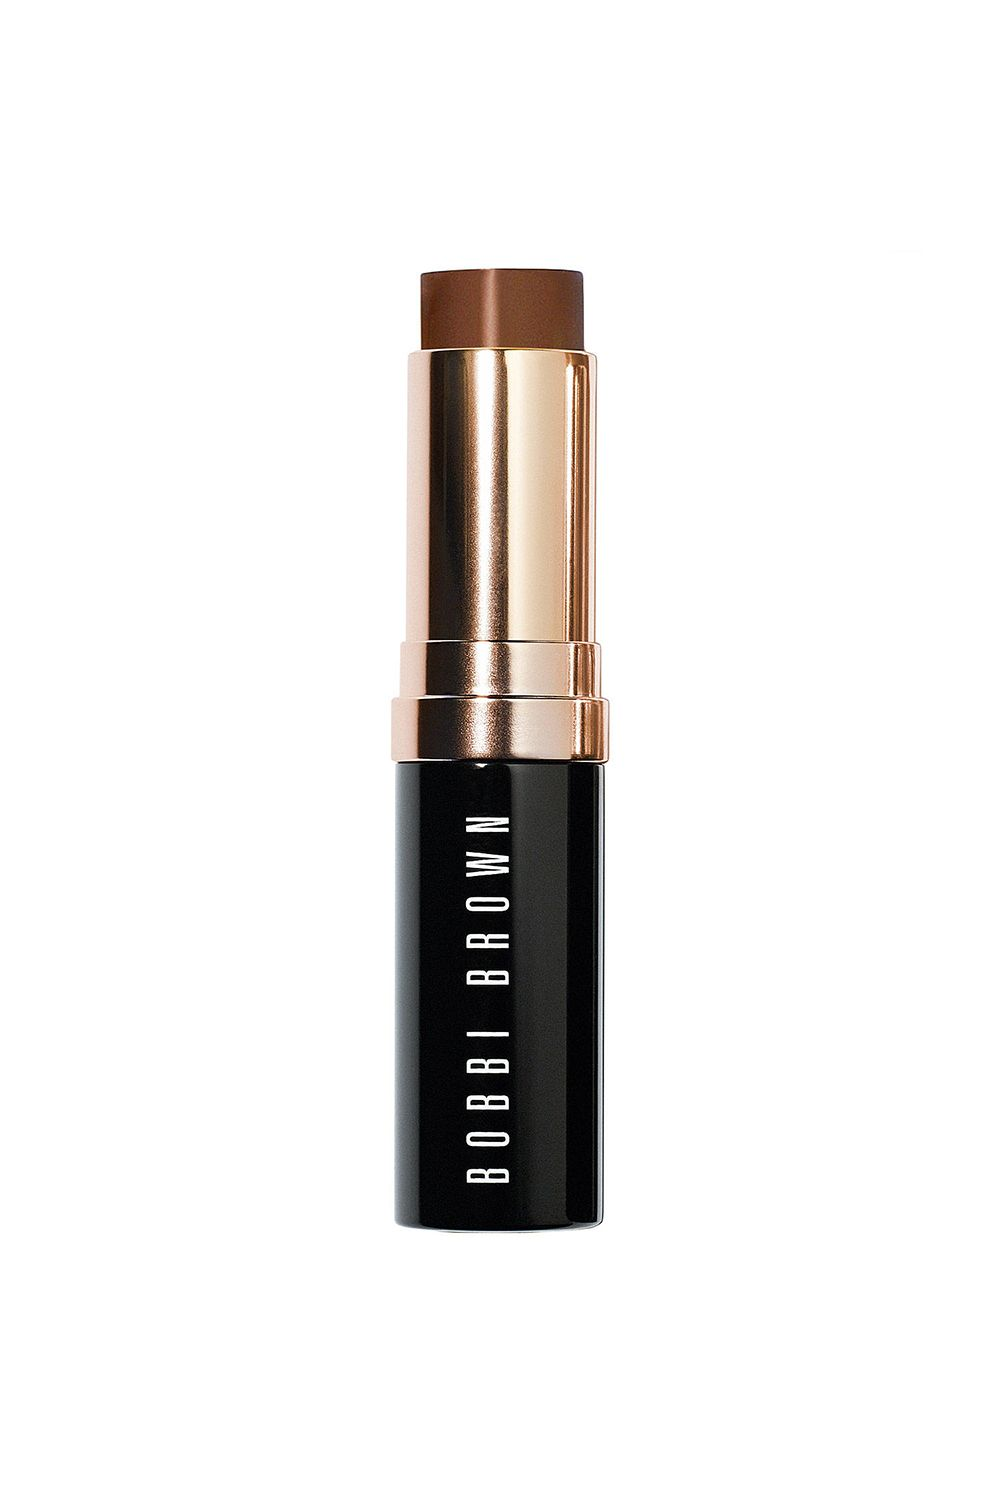 "<p>Scribble this lightweight foundation (yes, it really is lightweight, despite its stick form) over your skin, then blend it out with a damp sponge for a sheer, natural-looking finish.</p><p><i data-redactor-tag=""i"">Bobbi Brown Skin Foundation Stick in Walnut, $46</i></p><p><strong data-redactor-tag=""strong"">BUY IT: <a href=""http://www.bobbibrowncosmetics.com/product/14358/29723/Best-Sellers/Skin-Foundation-Stick/SS14?cm_mmc=Linkshare-_-TnL5HPStwNw-_-1-_-10#/shade/Walnut"">bobbibrowncosmetics.com</a>. </strong></p>"